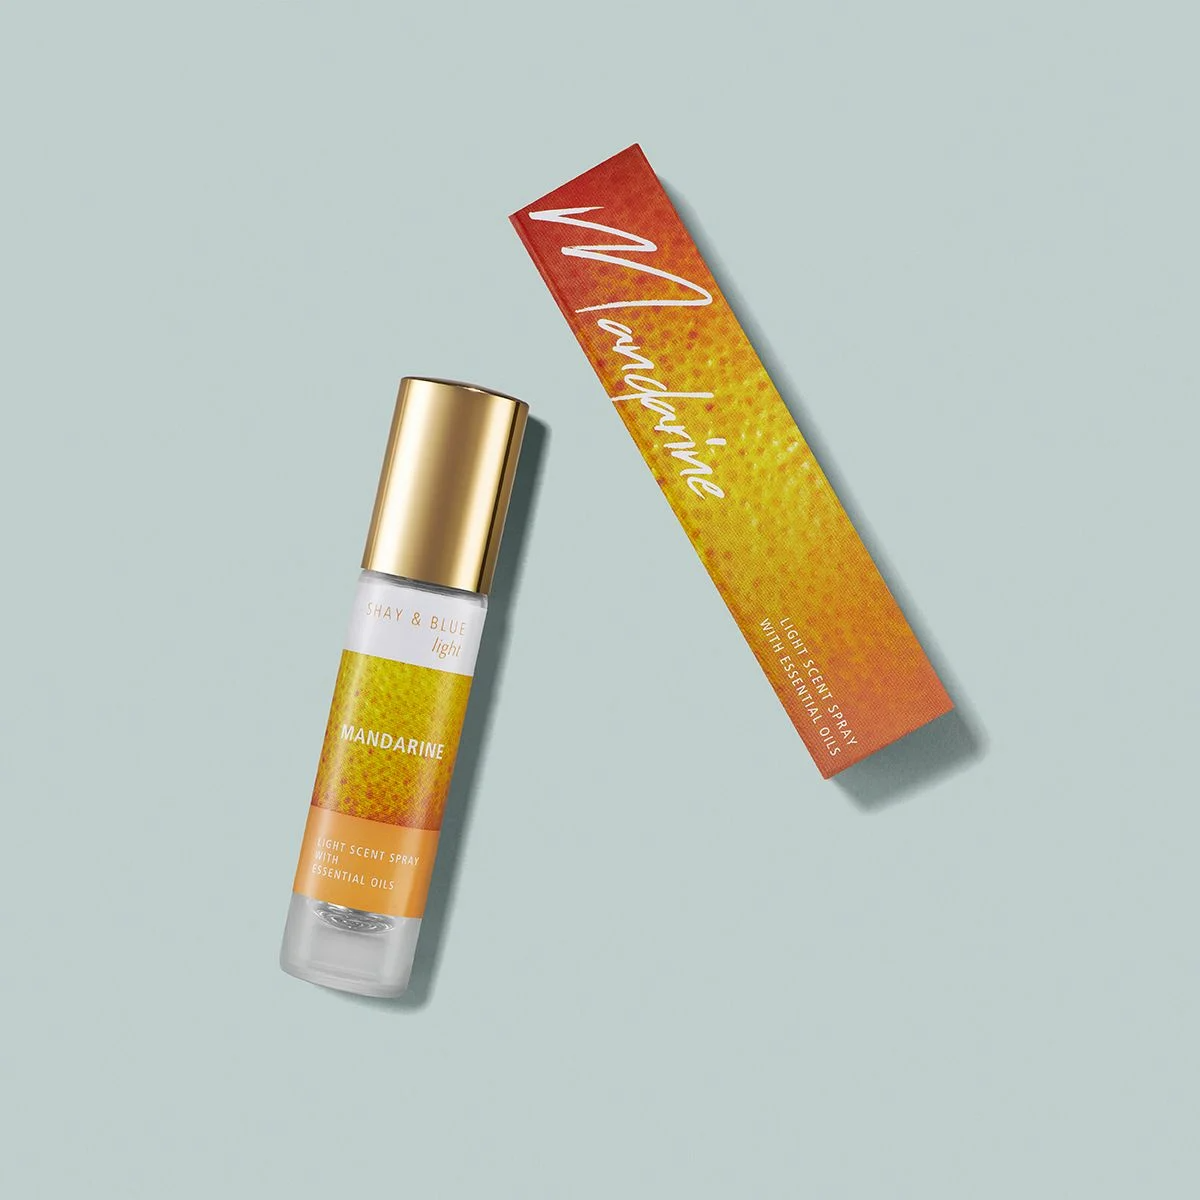 Mandarine Lite Fragrance 10ml | Clean citrus mix of fresh mandarin and pomelo. | Clean All Gender Fragrance | Shay & Blue